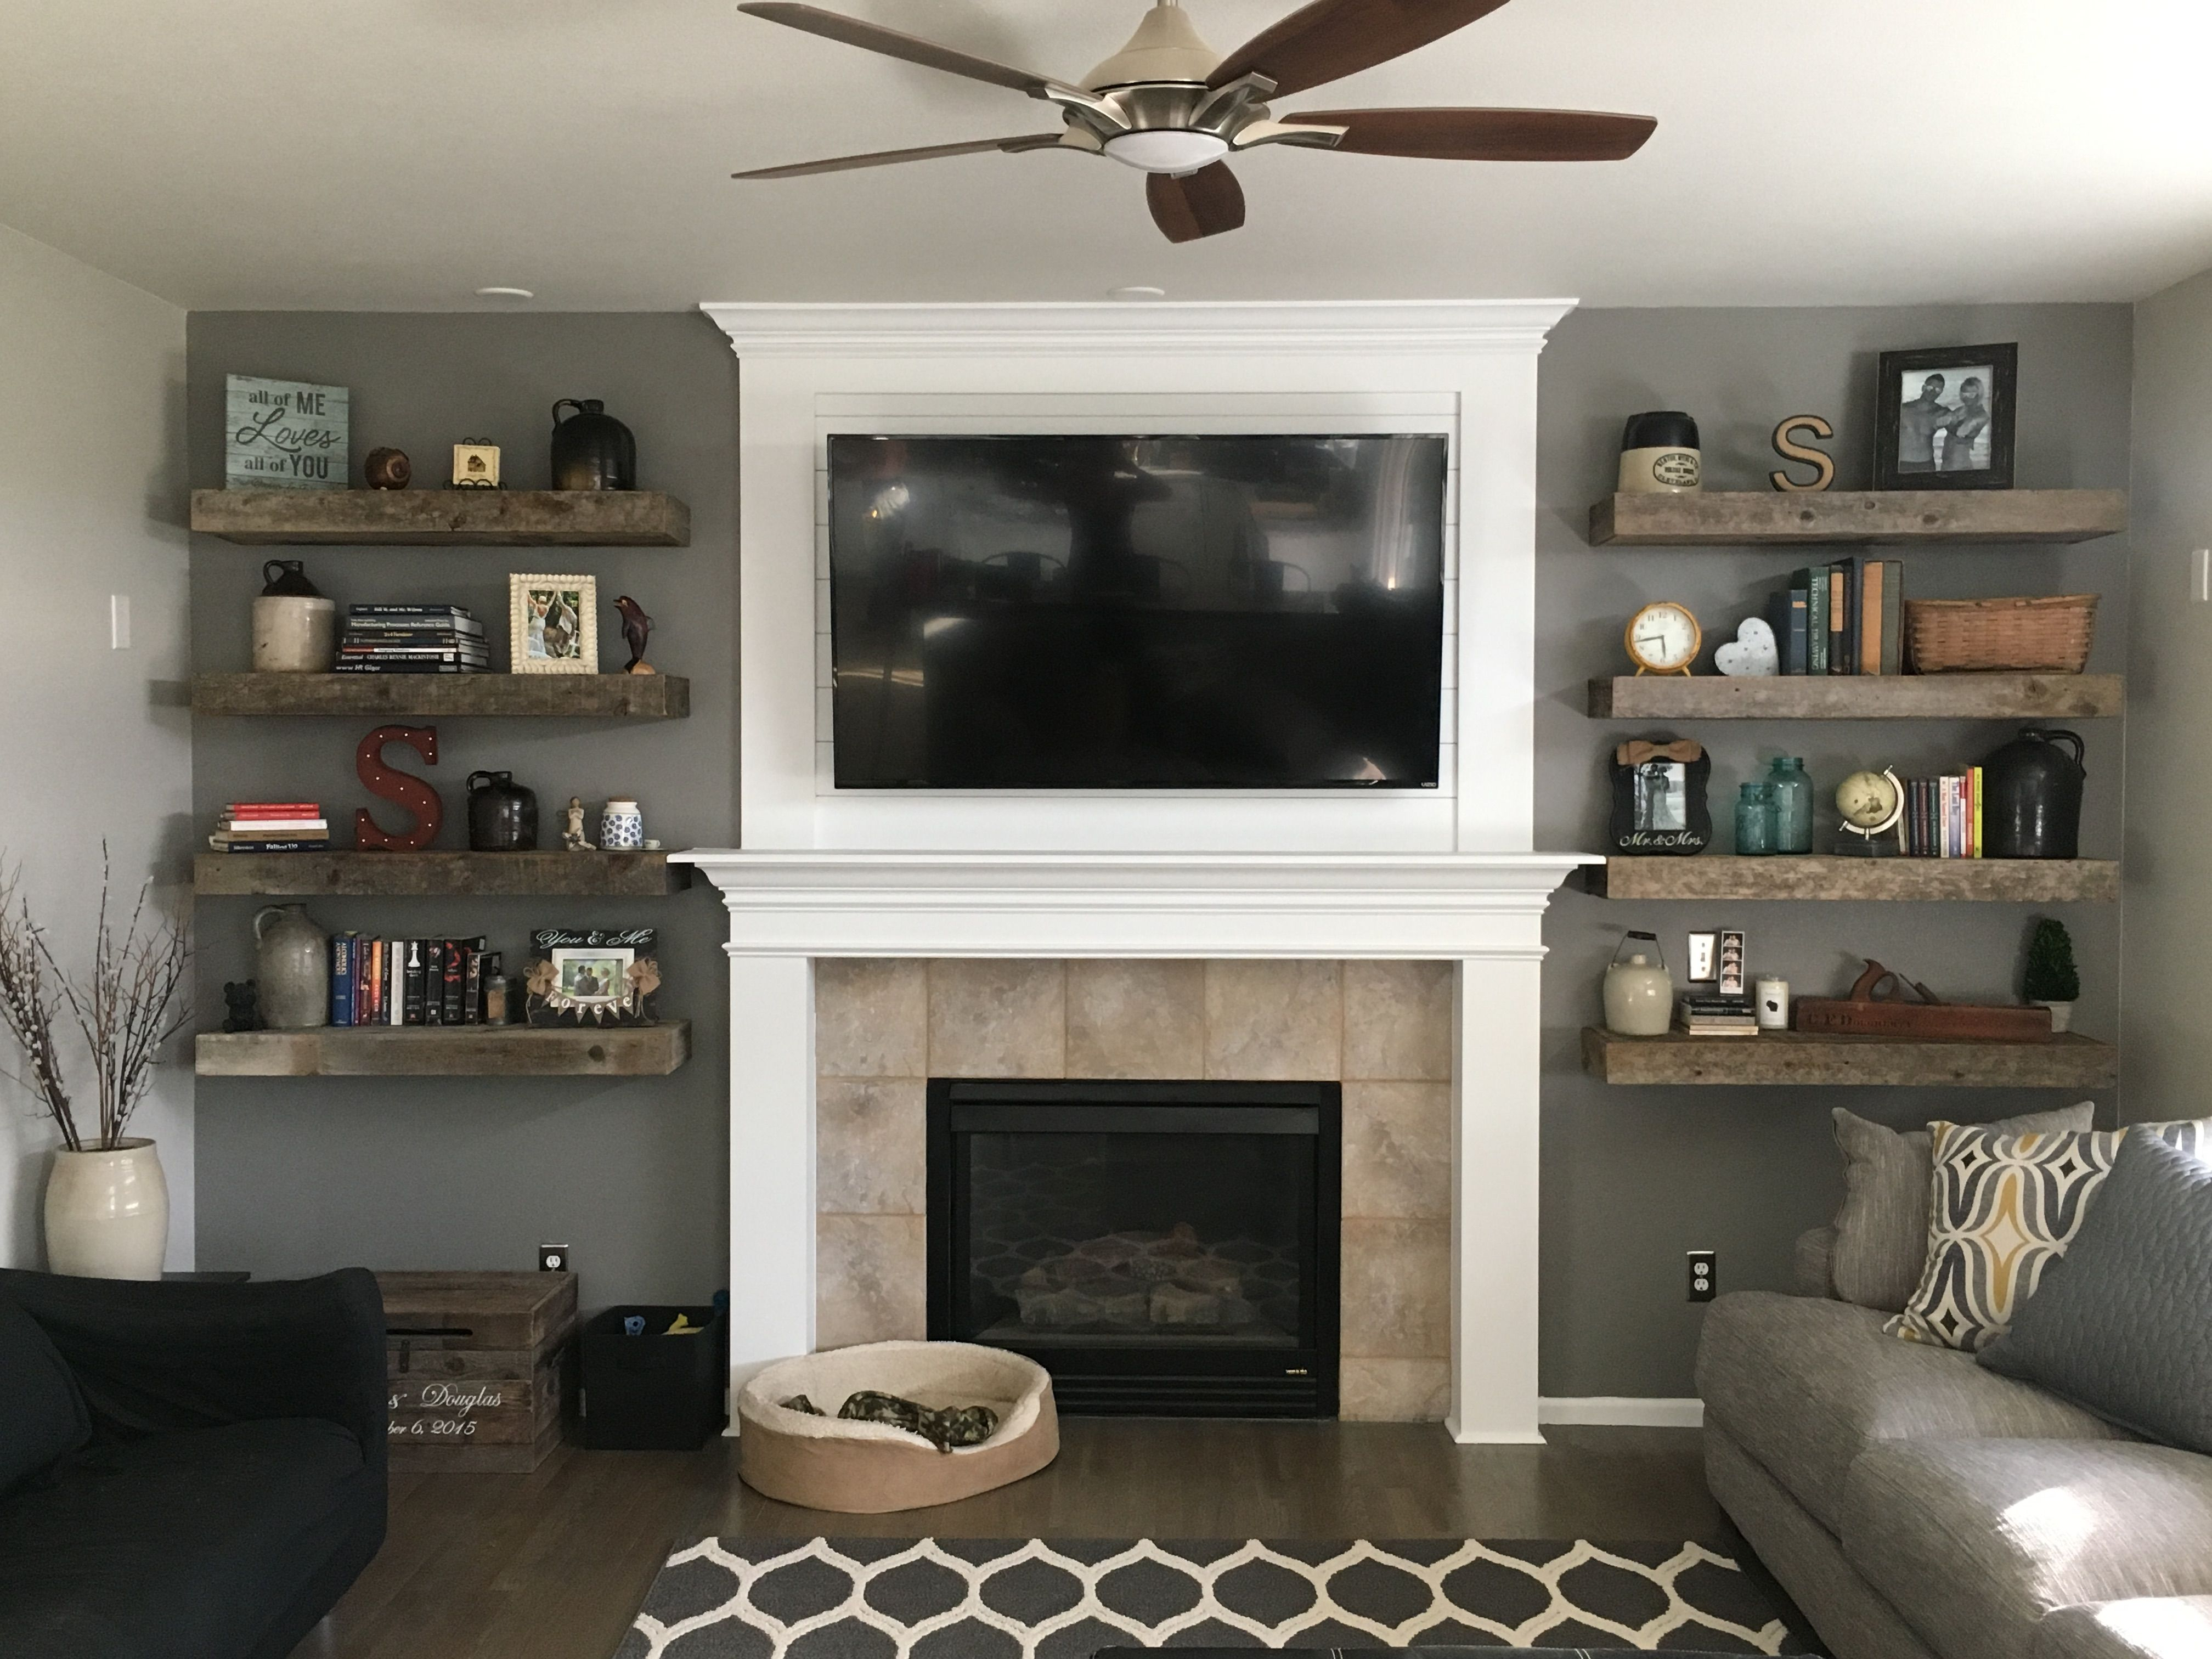 rustic living room barnwood floating shelves shiplap fireplace shelf wall books and decor home sweet husband did the extra kitchen storage furniture stylish mounted coat rack pipe